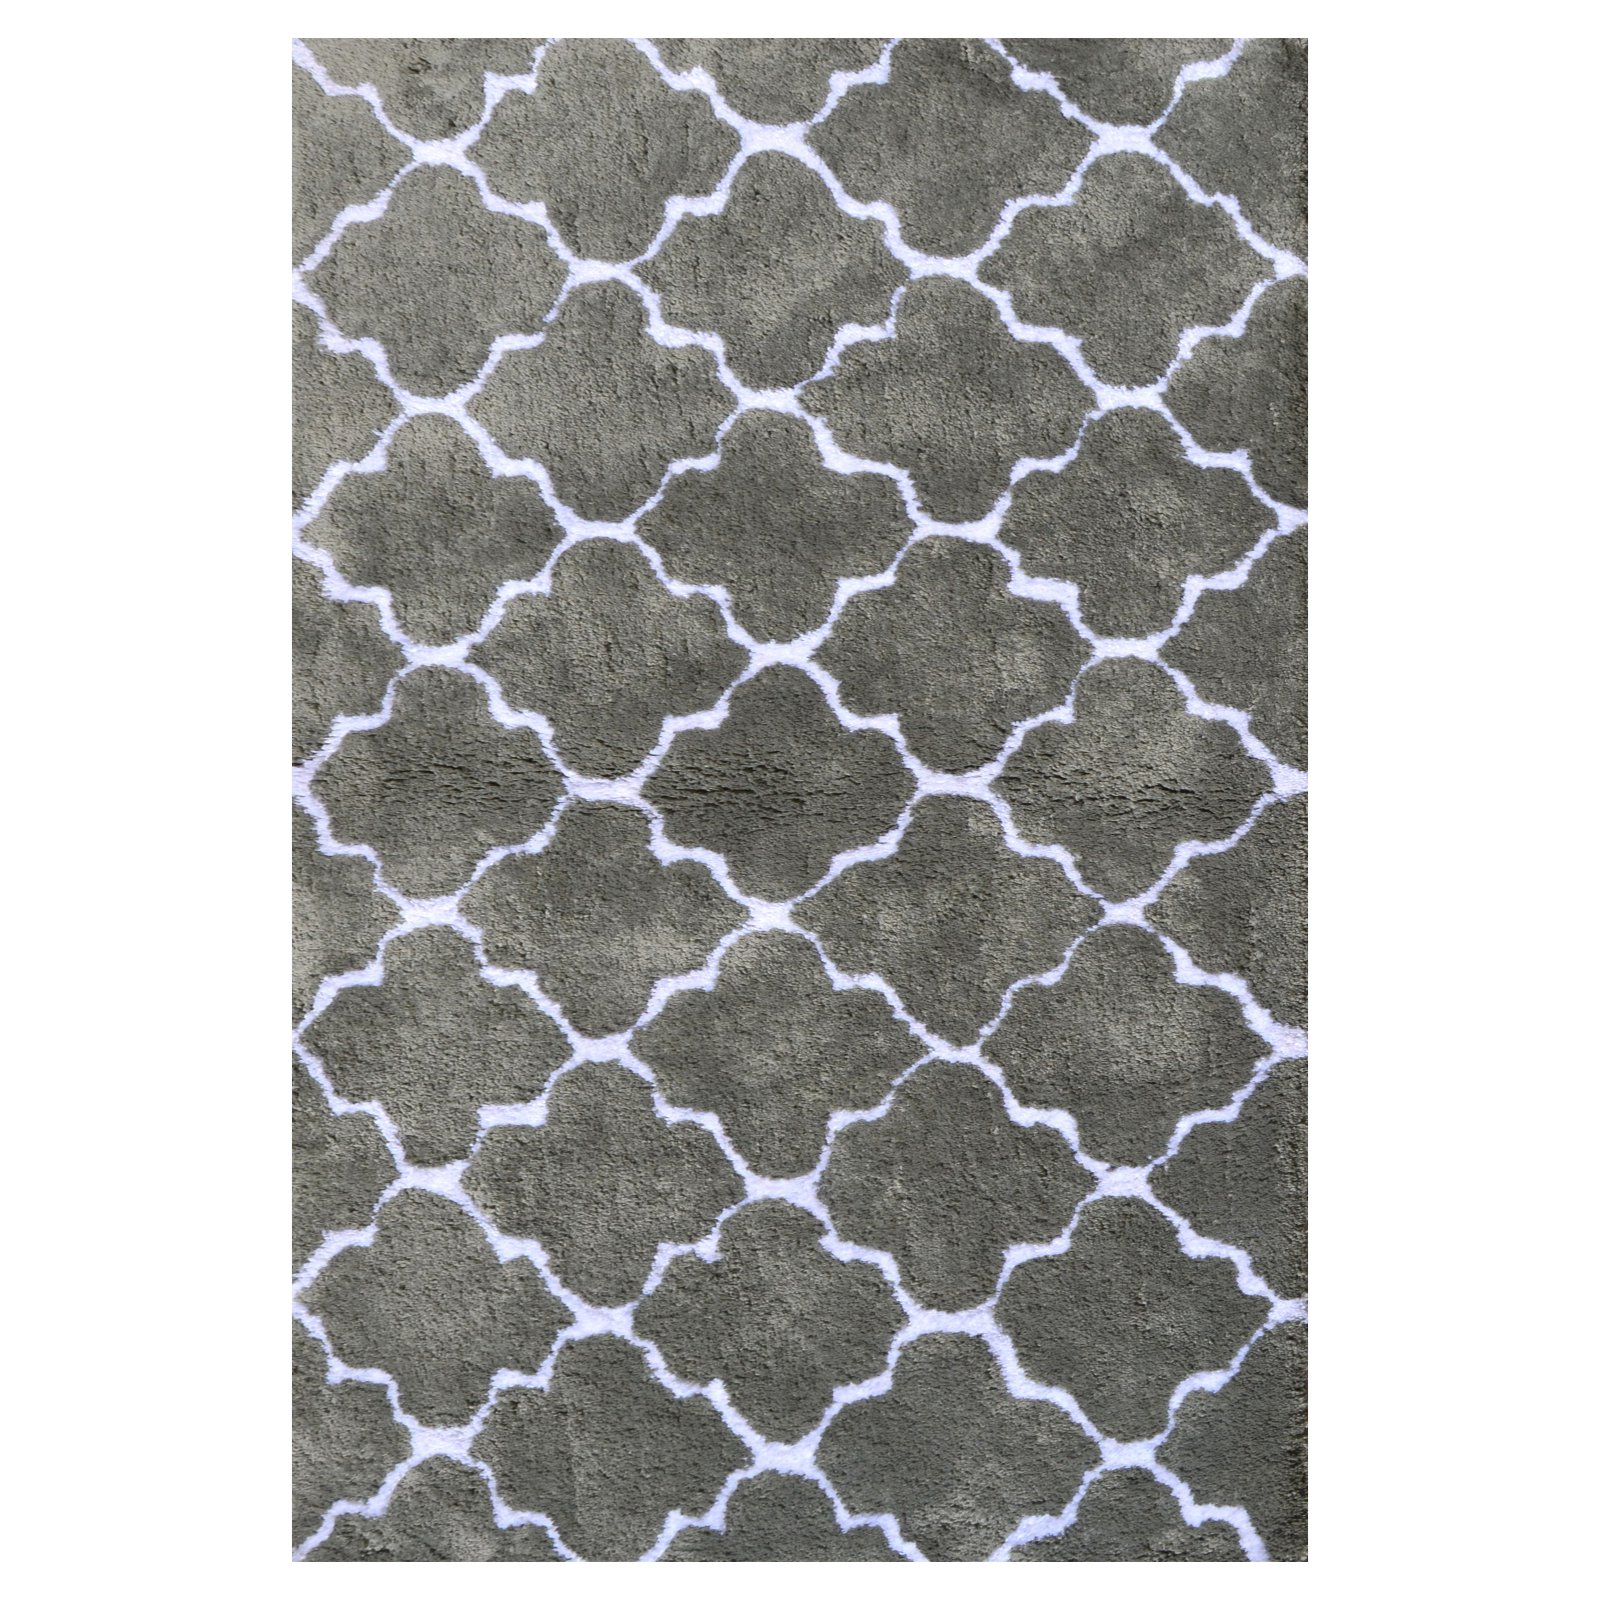 The Rug Market Couture Grey Area Rug, Size 2.8' x 4.8'